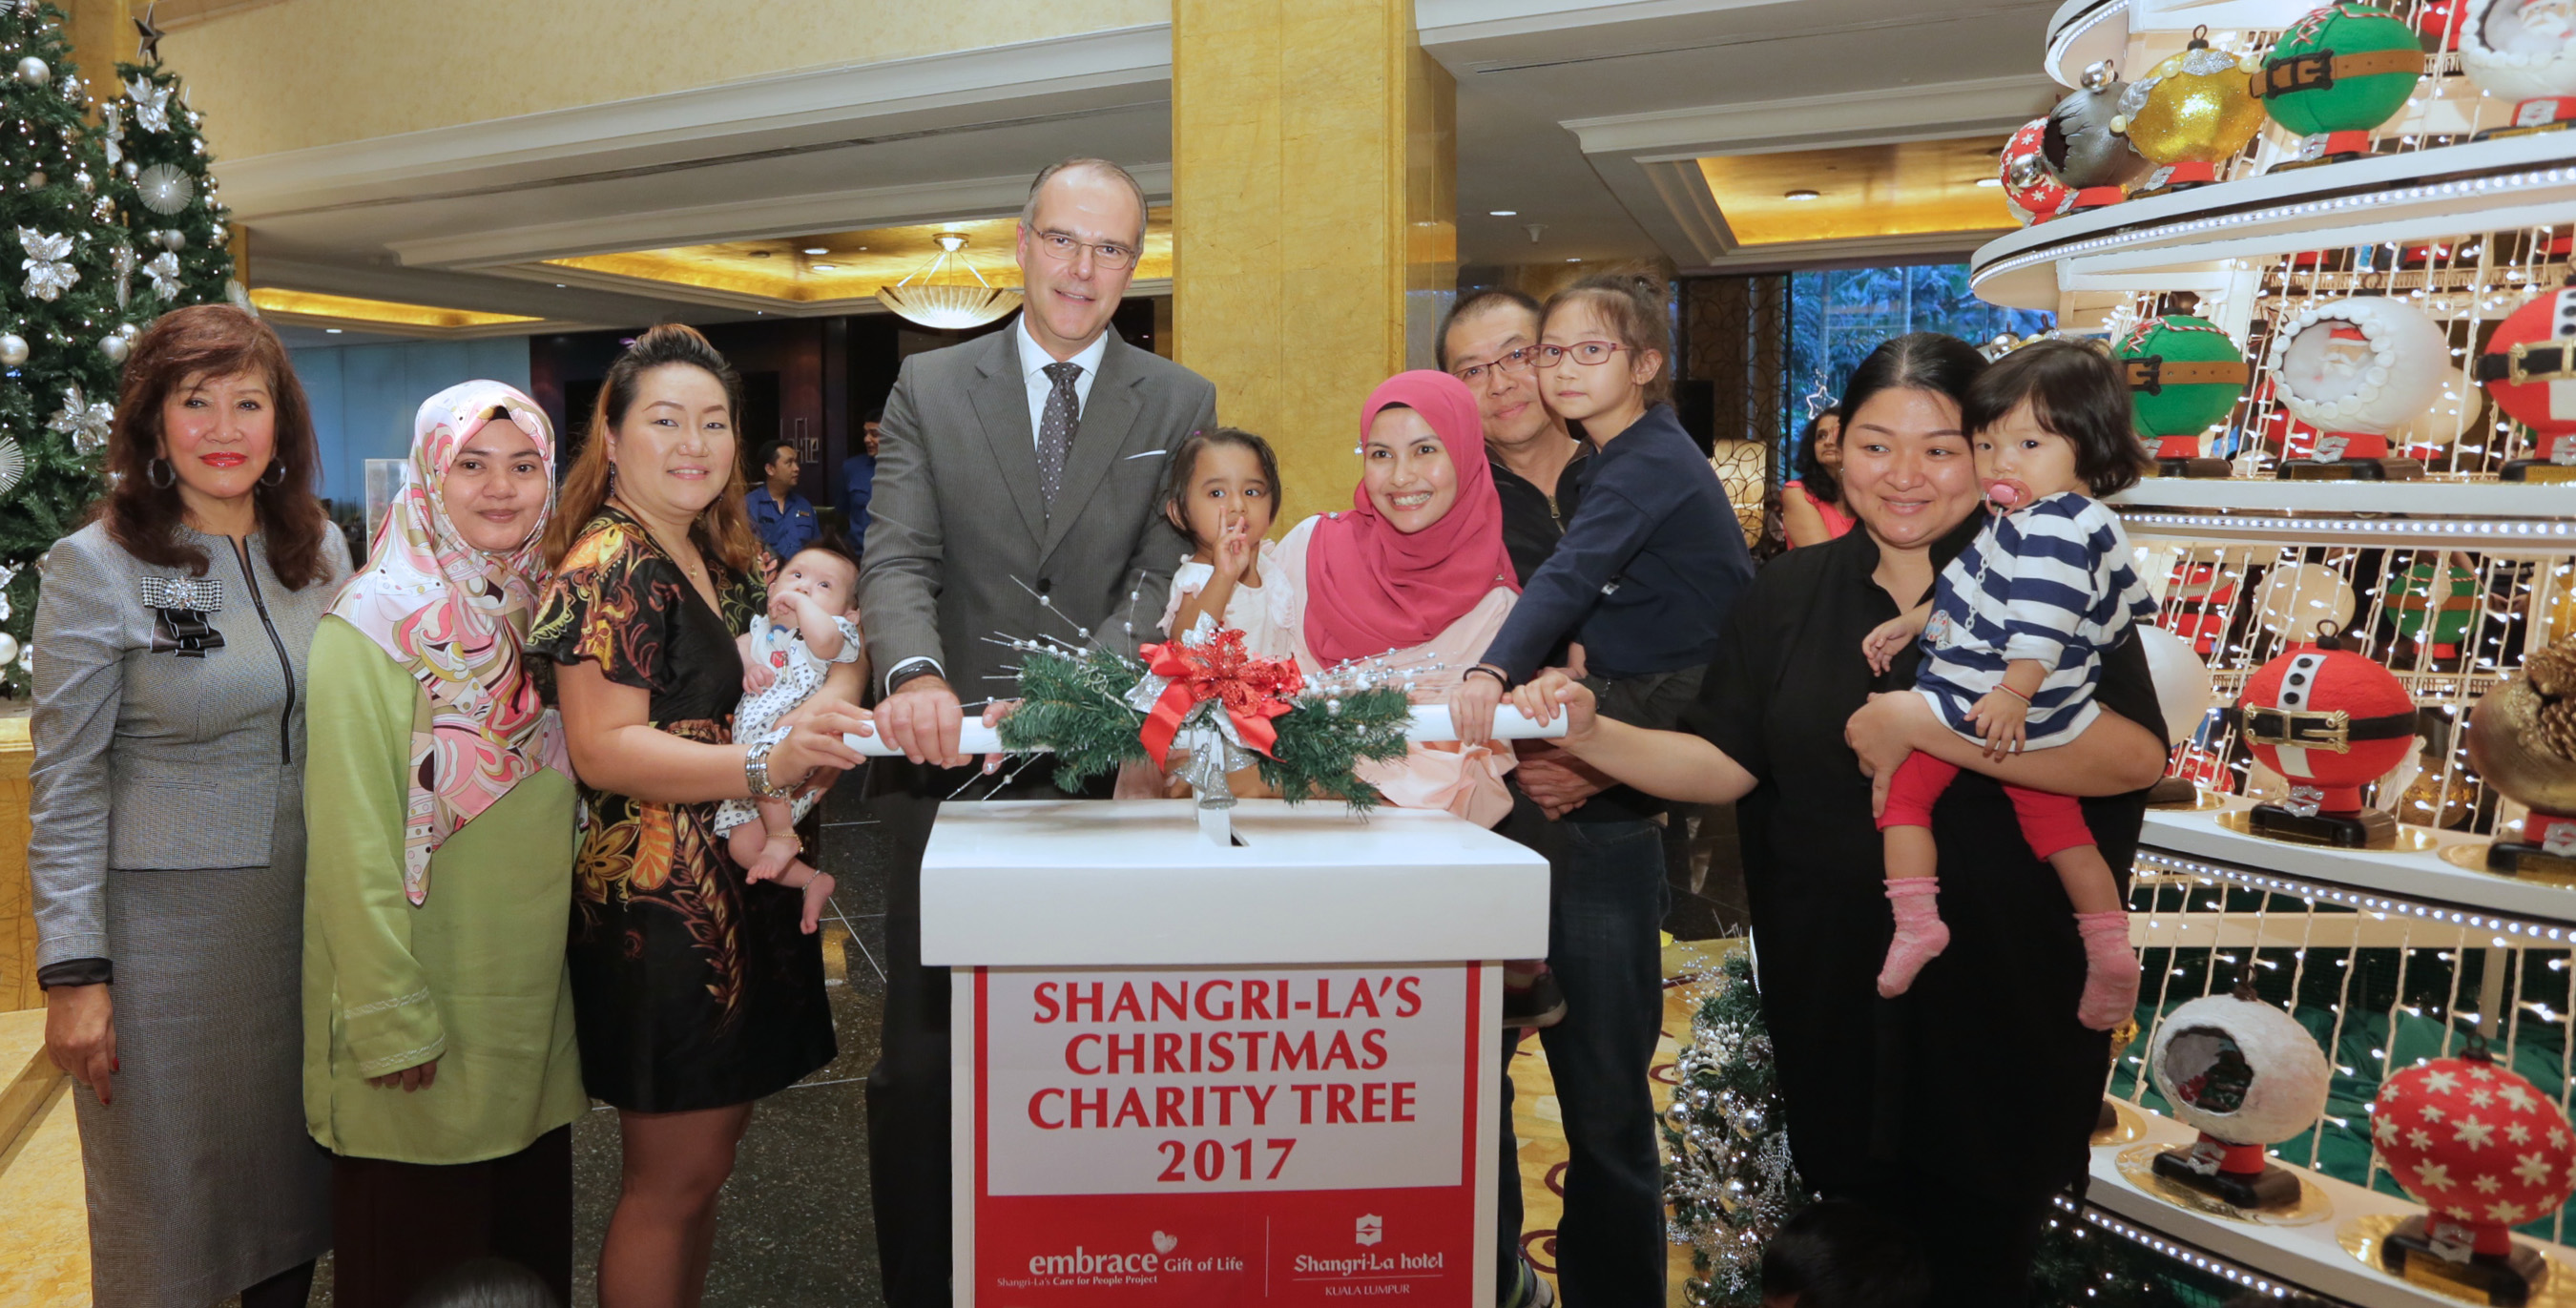 Dato' Rosemarie Wee and the six recipients of the charity fund help Manfred Weber (4th from left) light up the tree